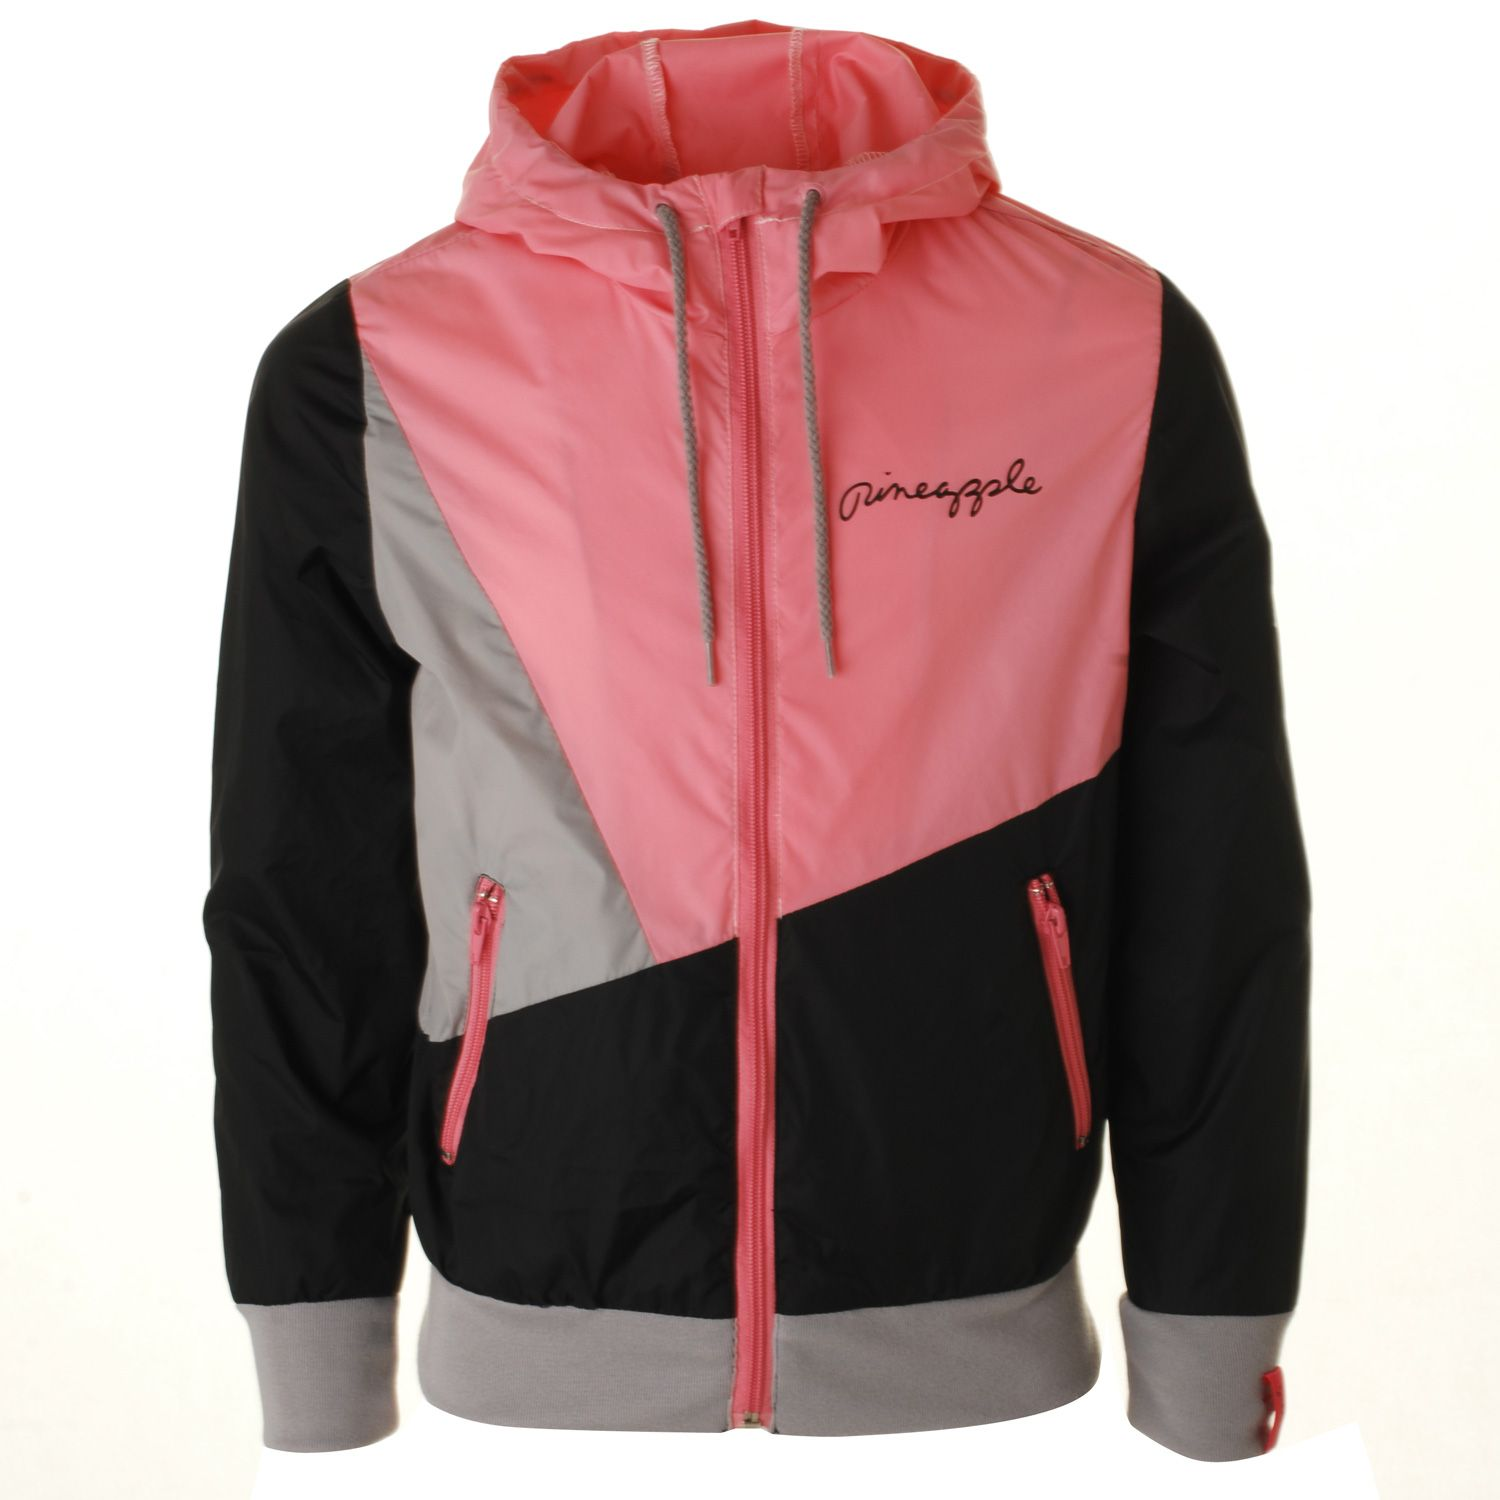 Pineapple-Girls-Lightweight-Jacket-Junior